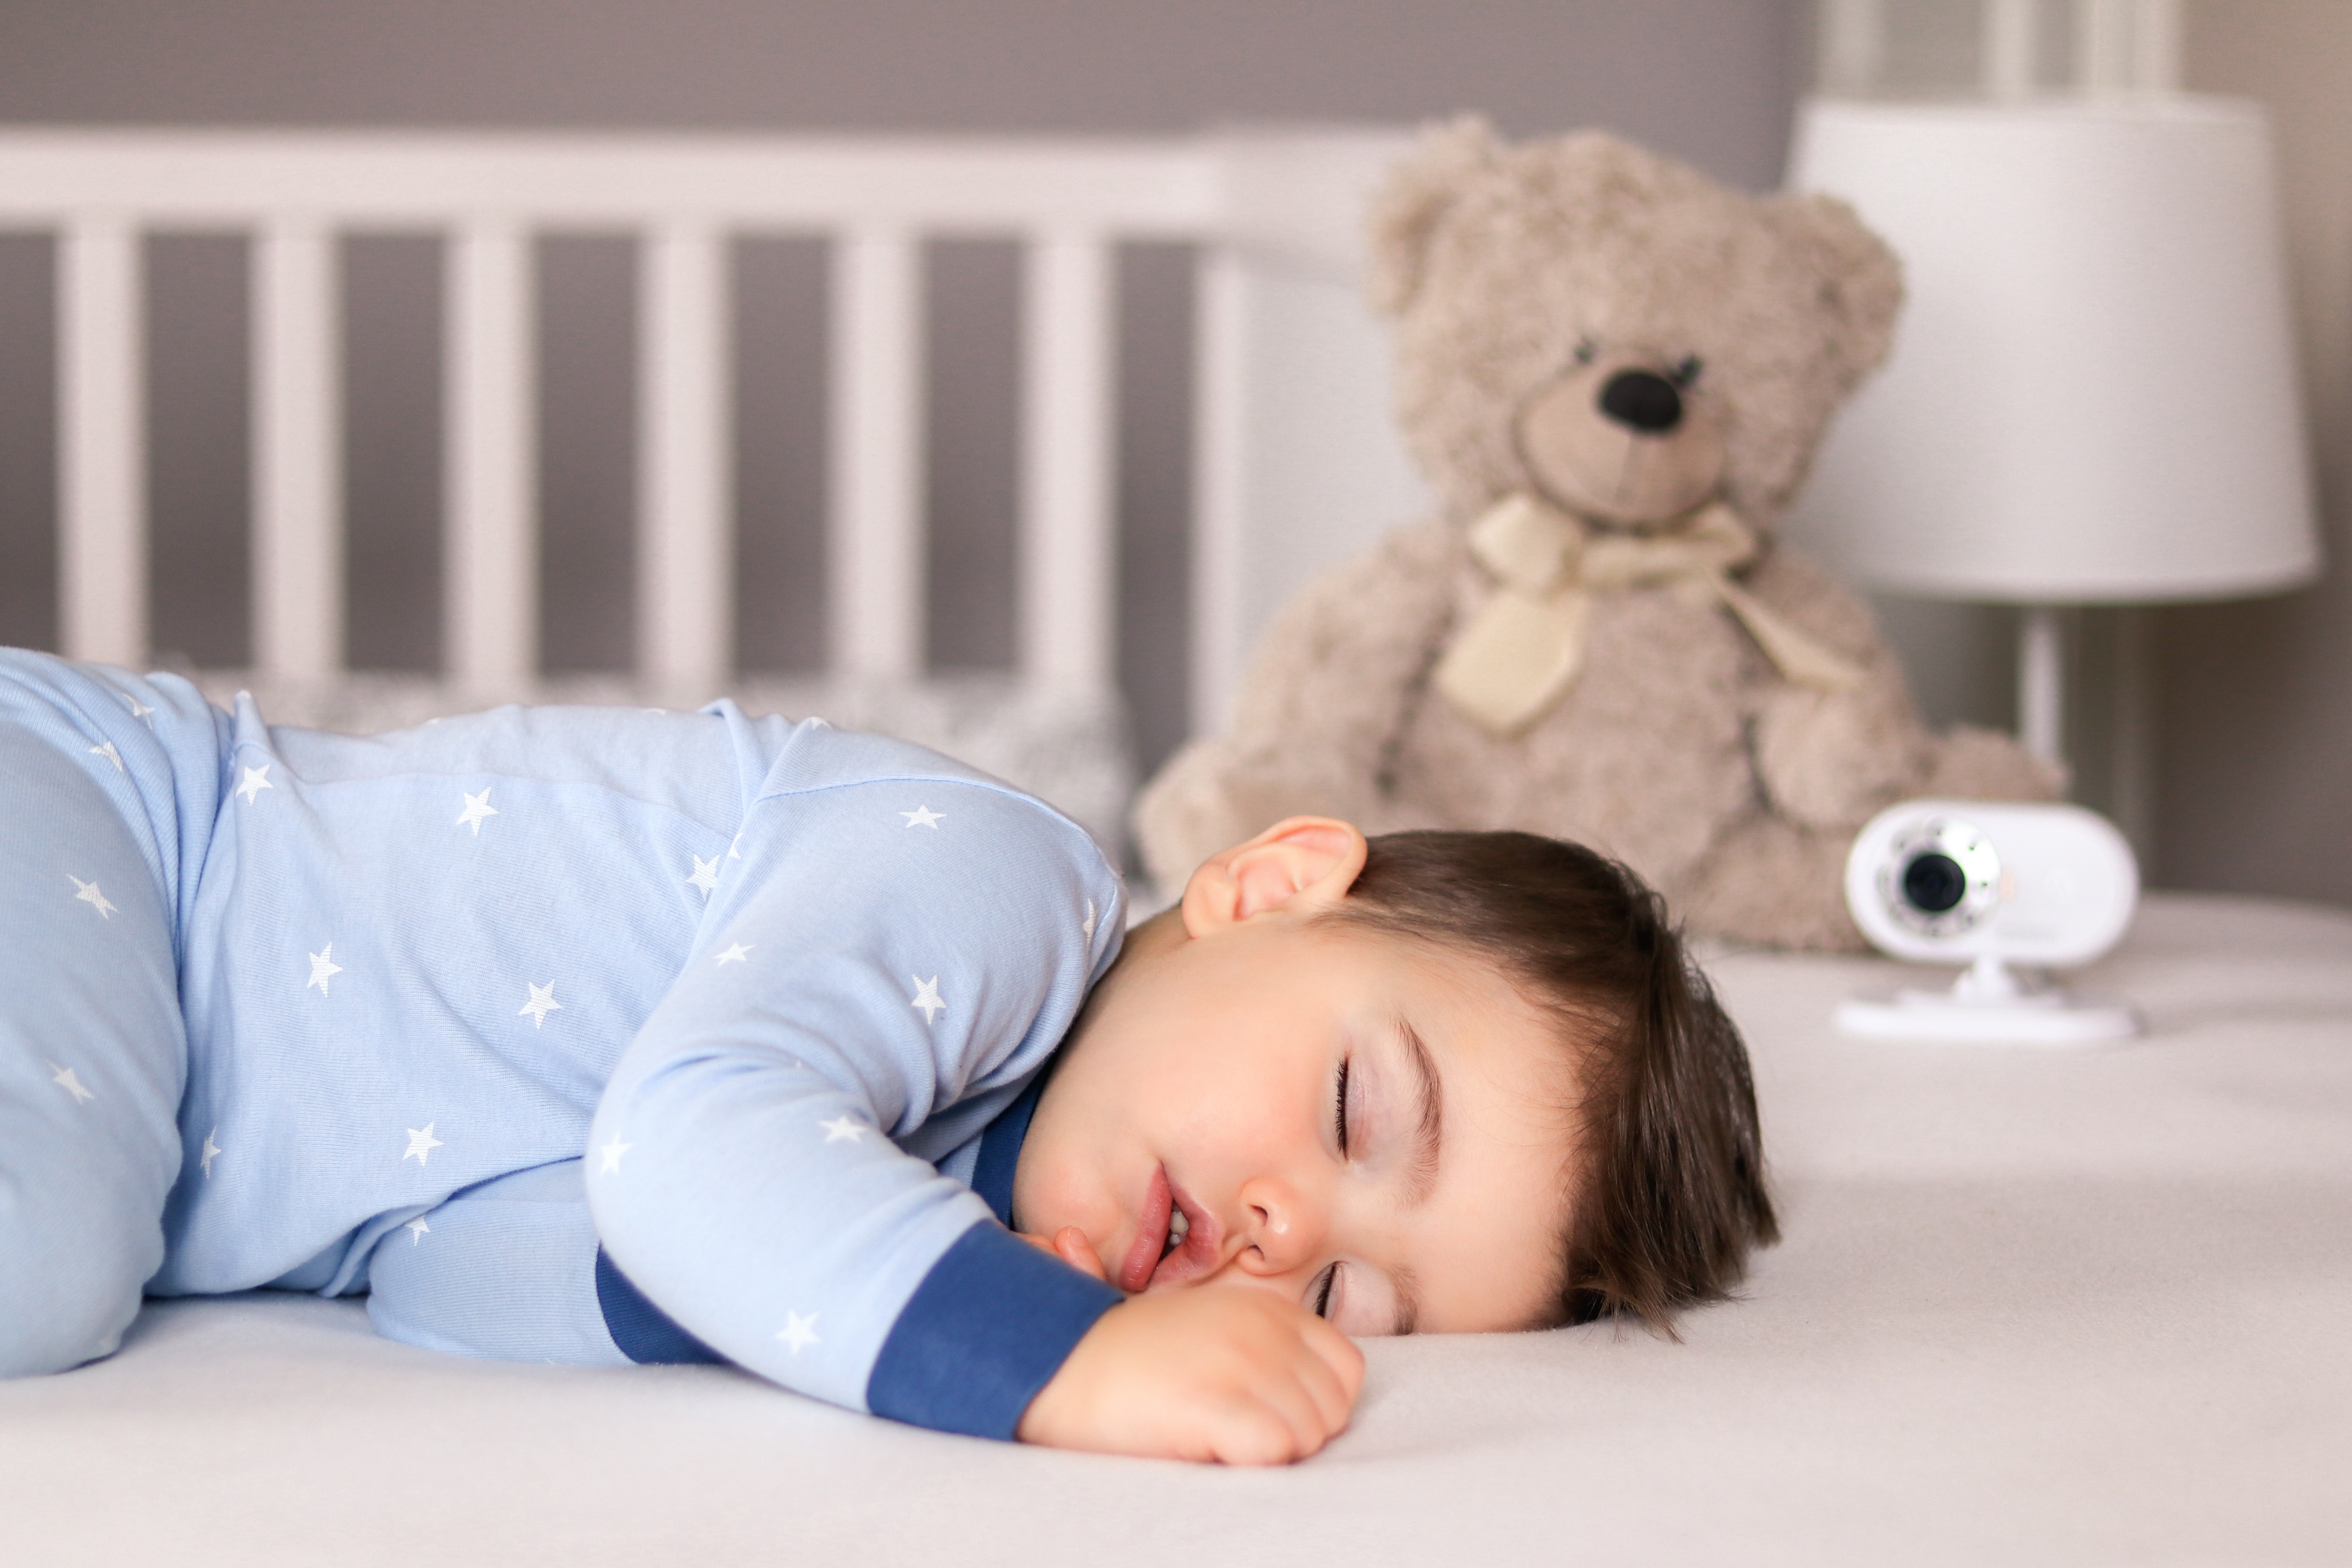 A Sleep Consultant's Real Answers to Parents' Top 10 Sleep Questions